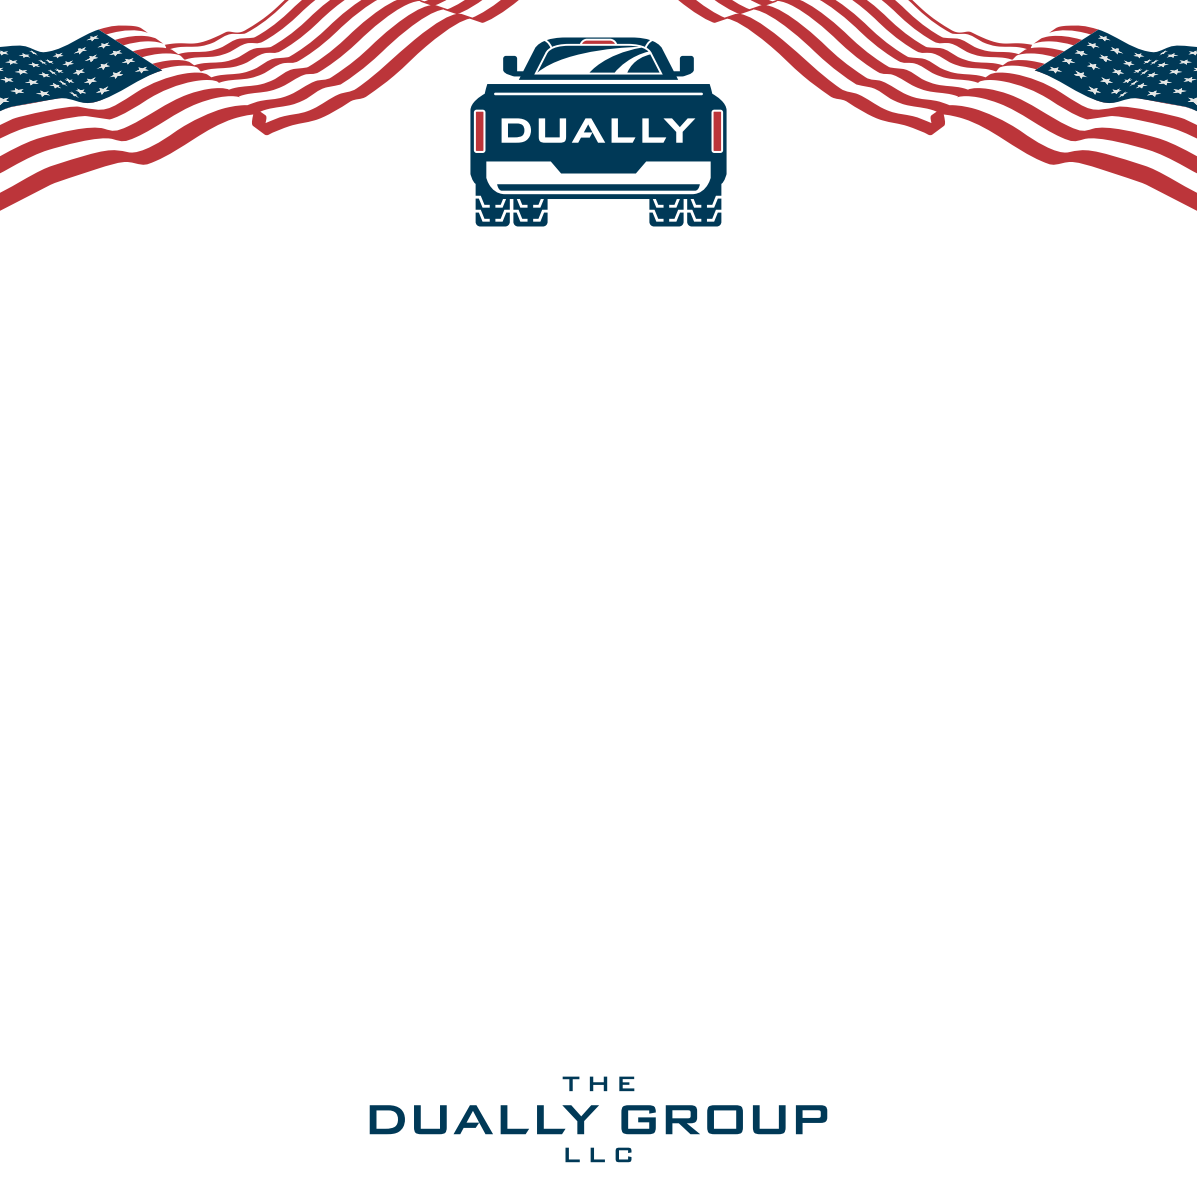 The Dually Group business cards and stationary (post-its)